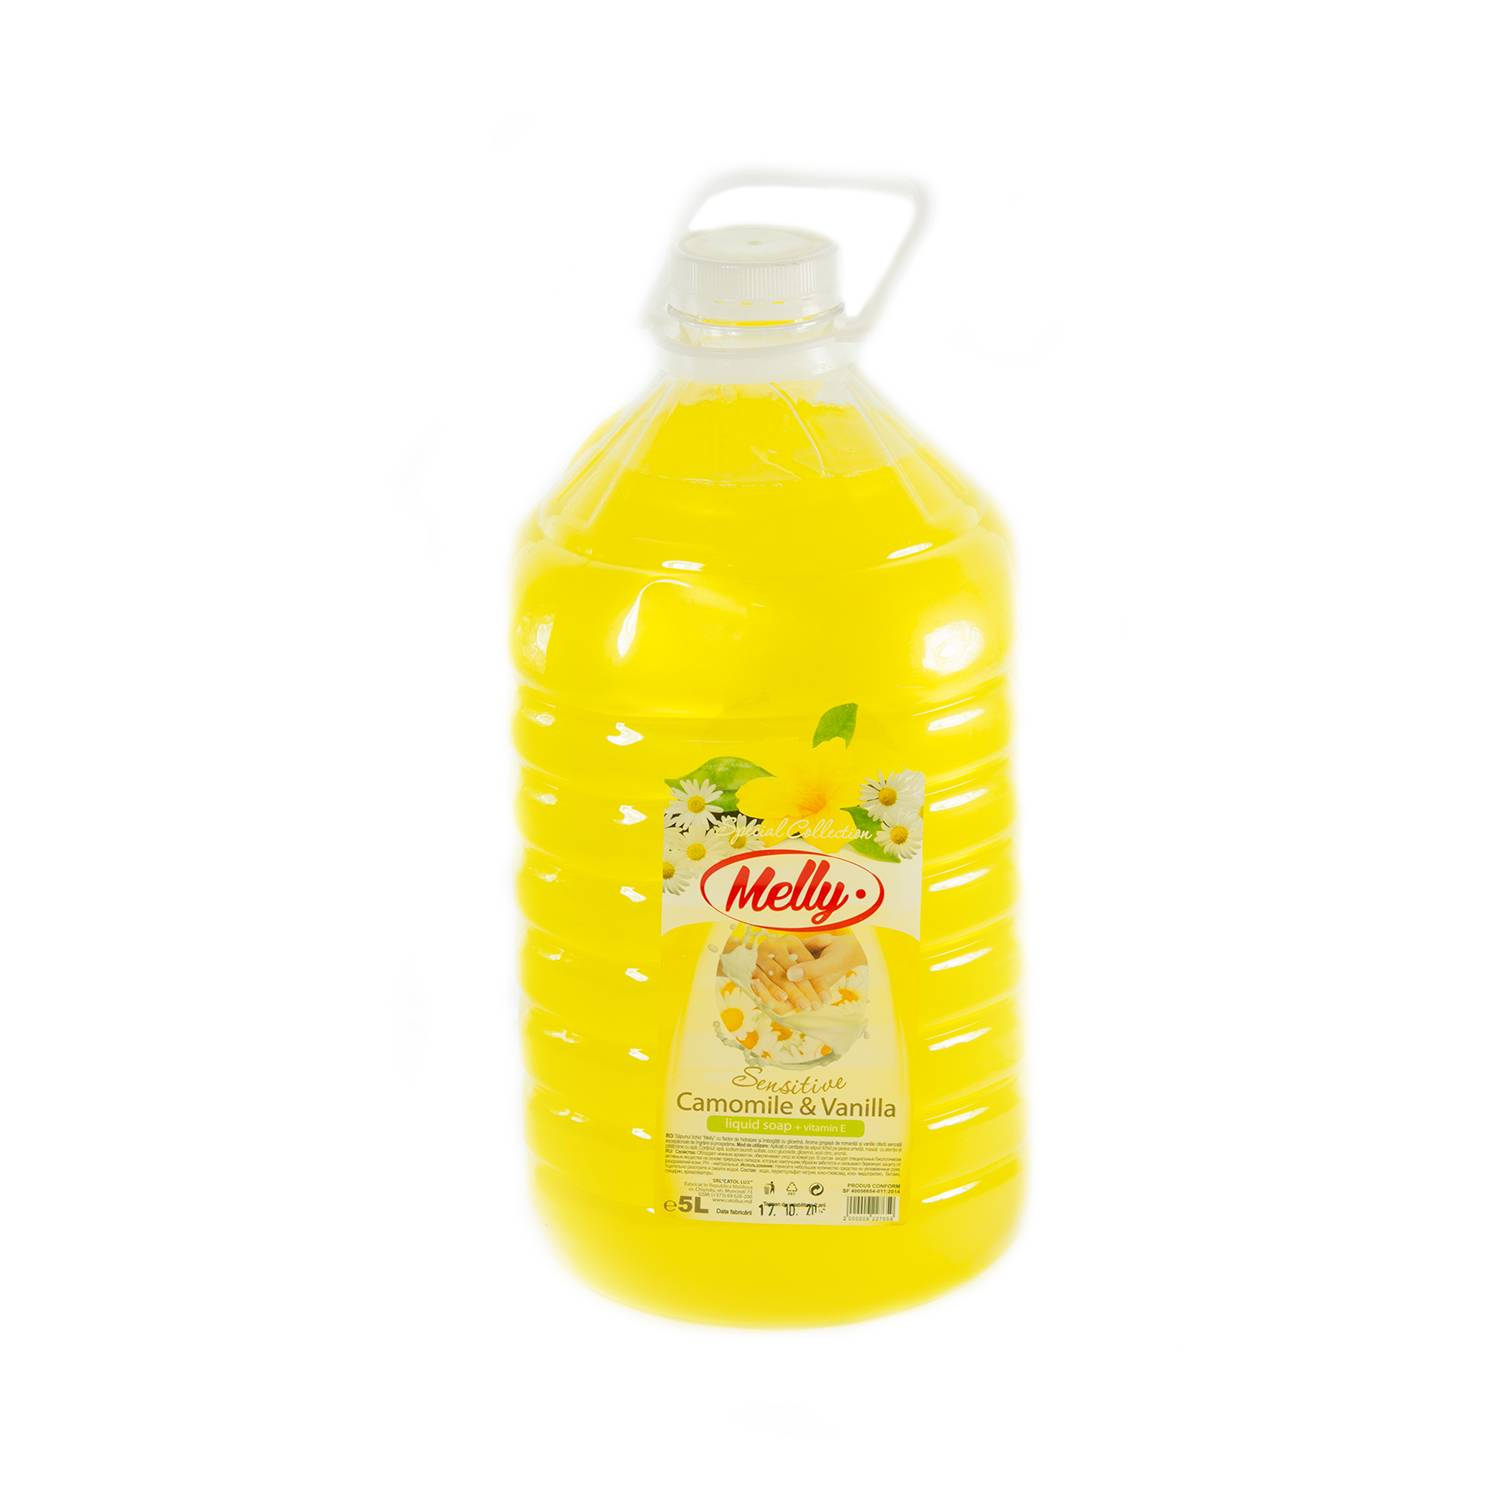 Sapun lichid Melly, 5000 ml, romanita-vanilie